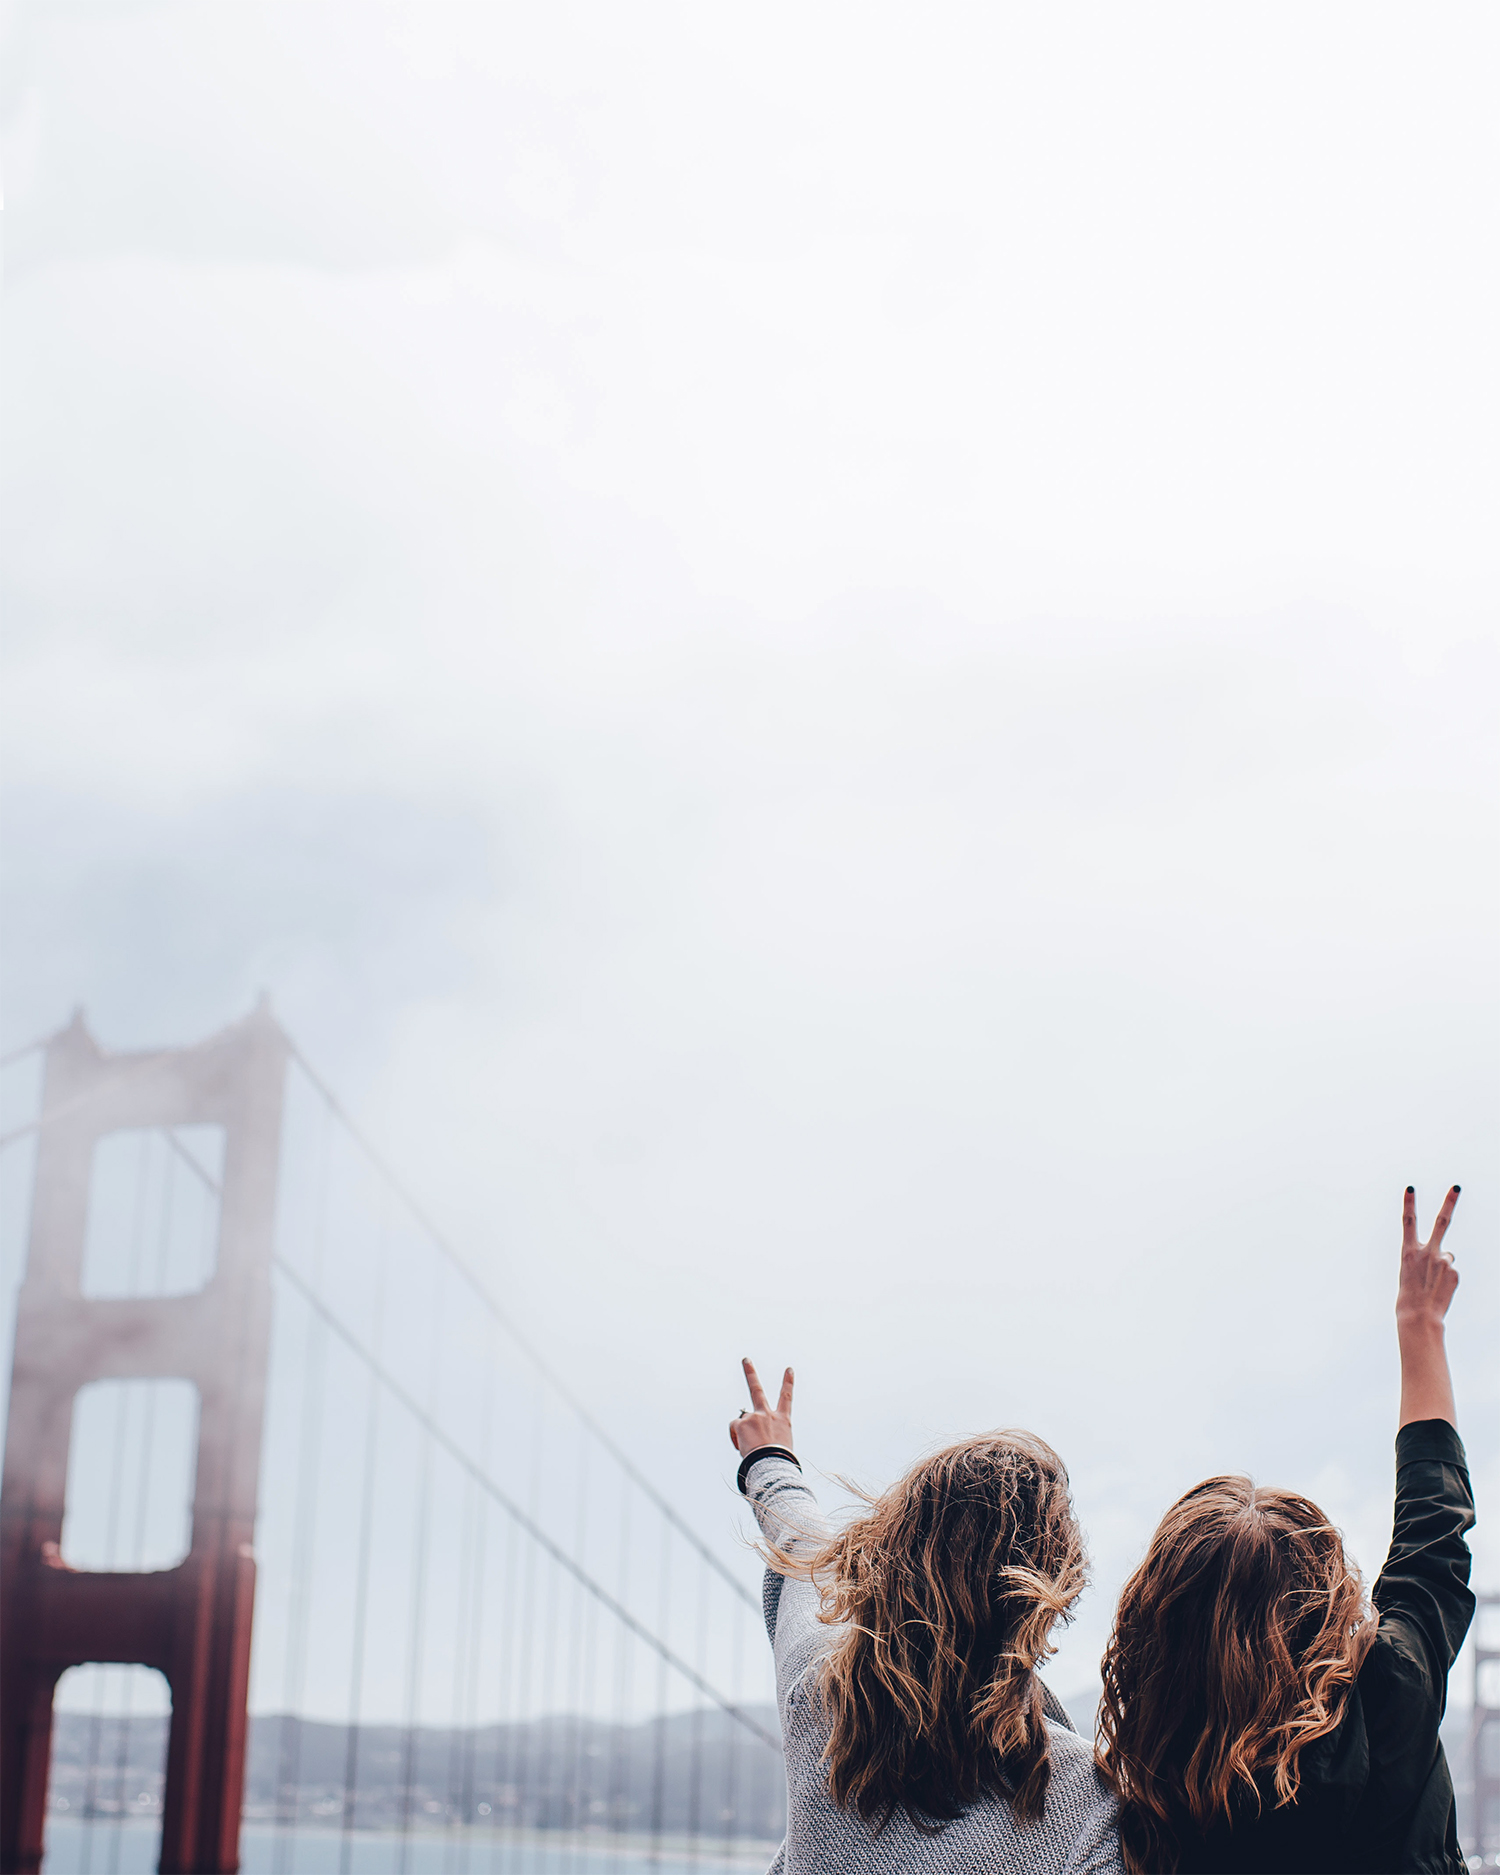 10 Things to Do During Your Bachelorette Party in San Francisco